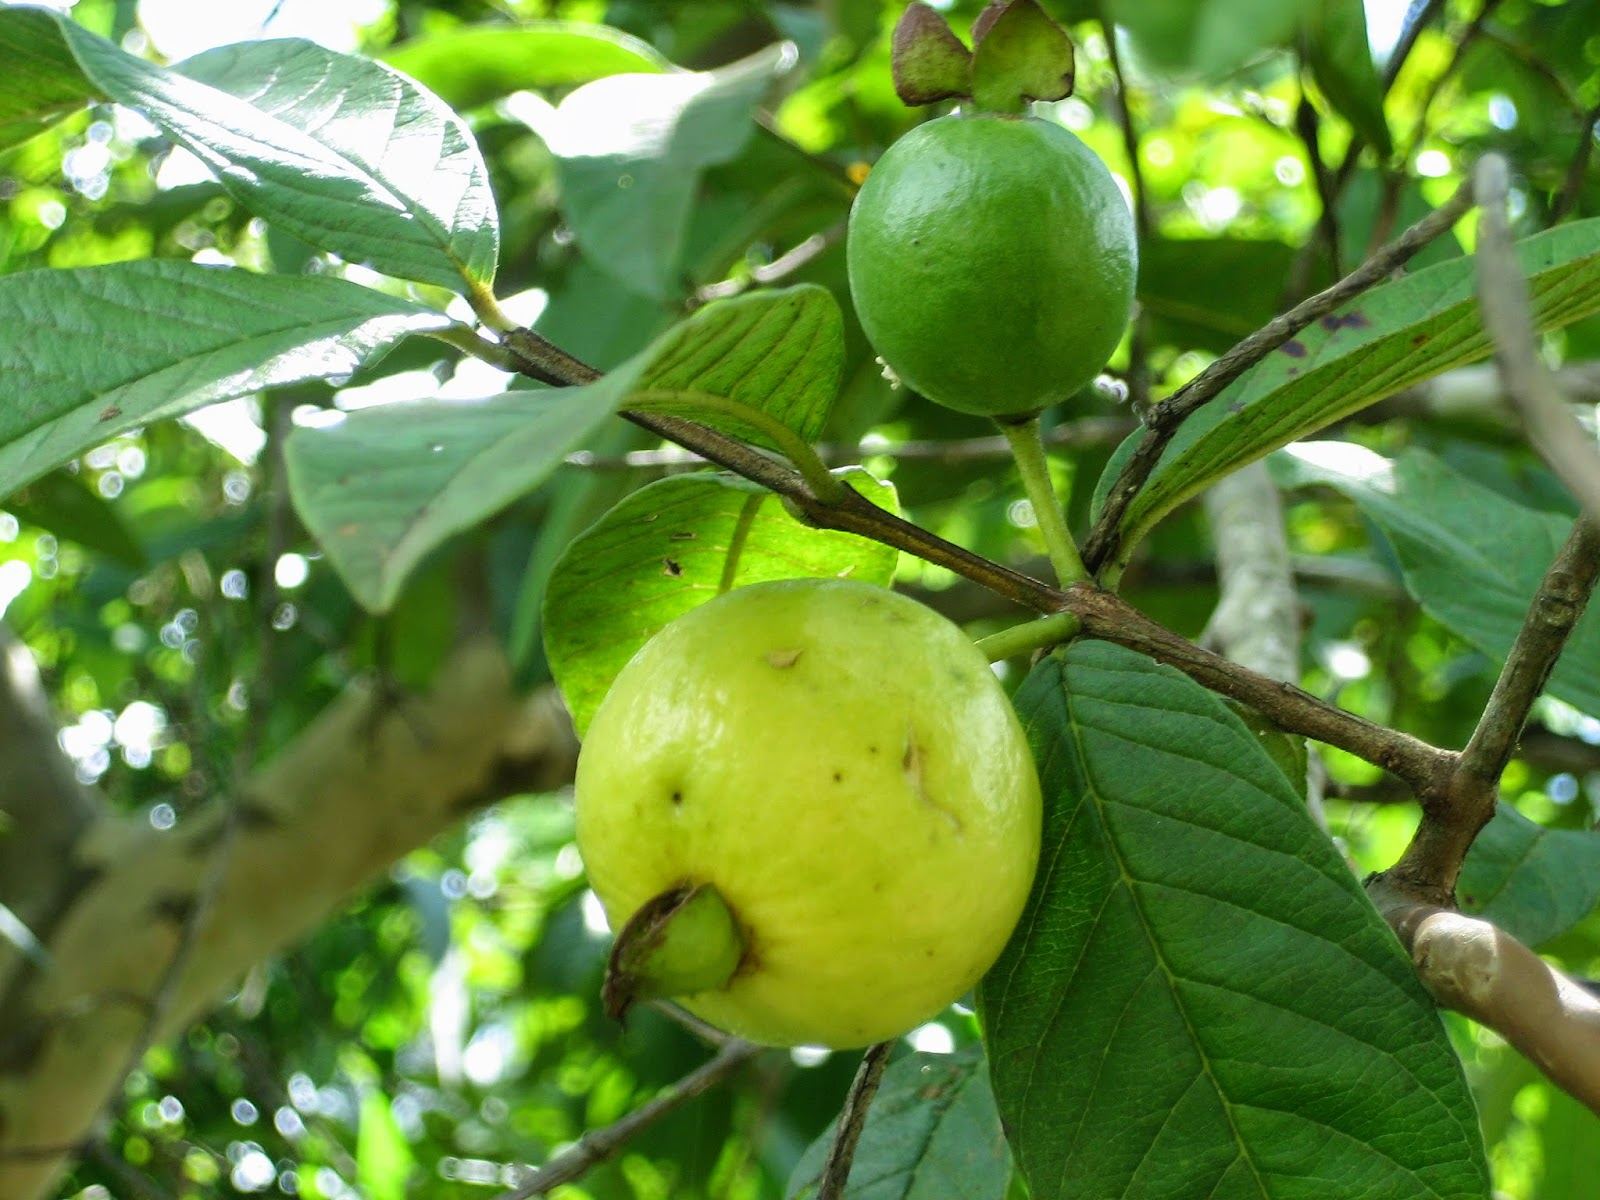 guava fruit Guava fruit production isn't affected by many pests the few pests attracted to guava trees seldom cause severe damage and most are controllable by natural methods.